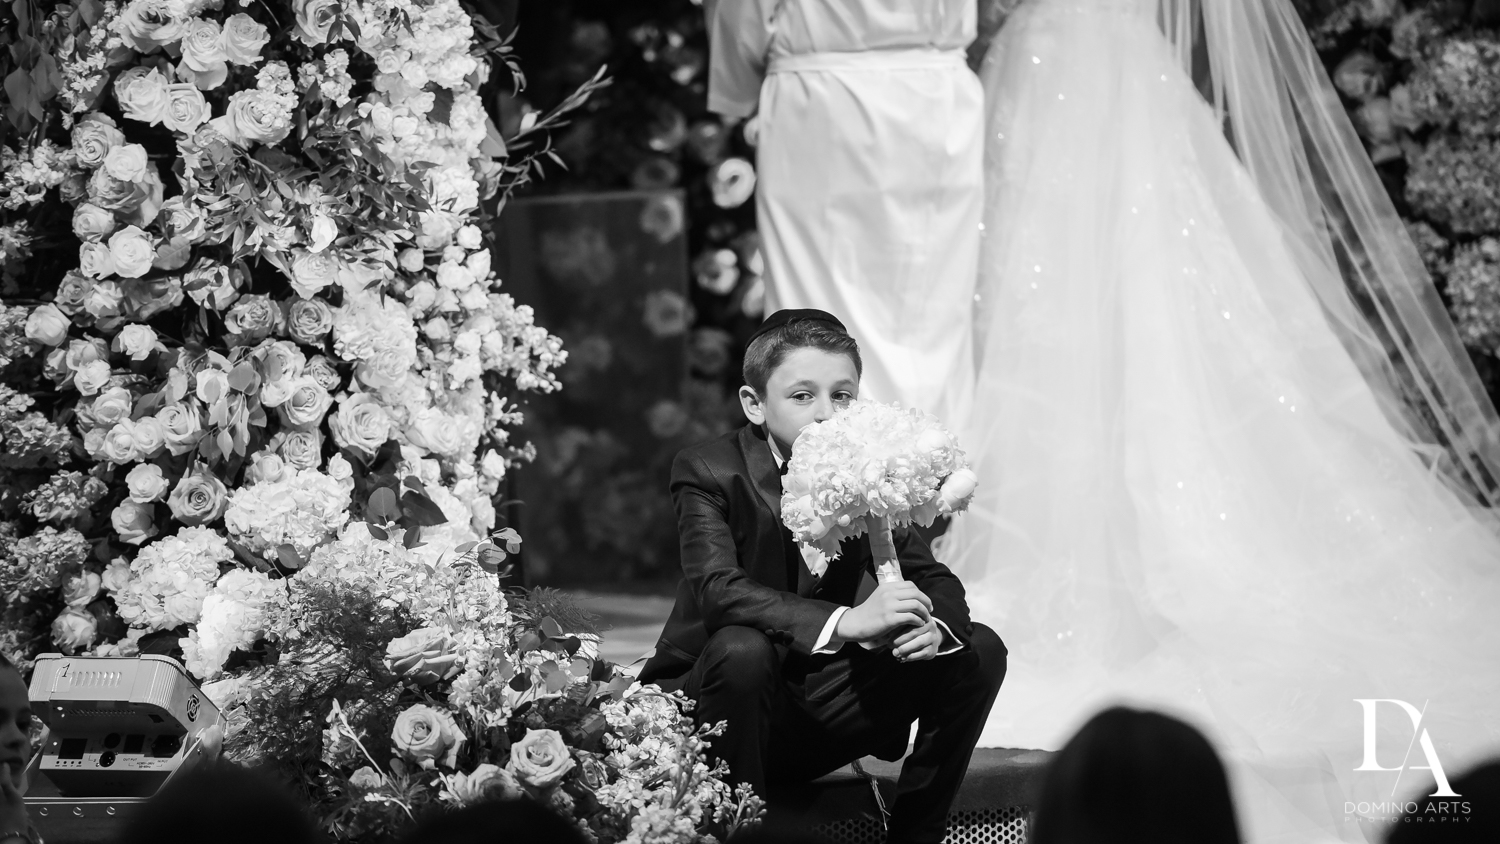 B&W pictures at Lavish Flowers & Crystals Wedding at Aventura Turnberry Jewish Center by Domino Arts Photography